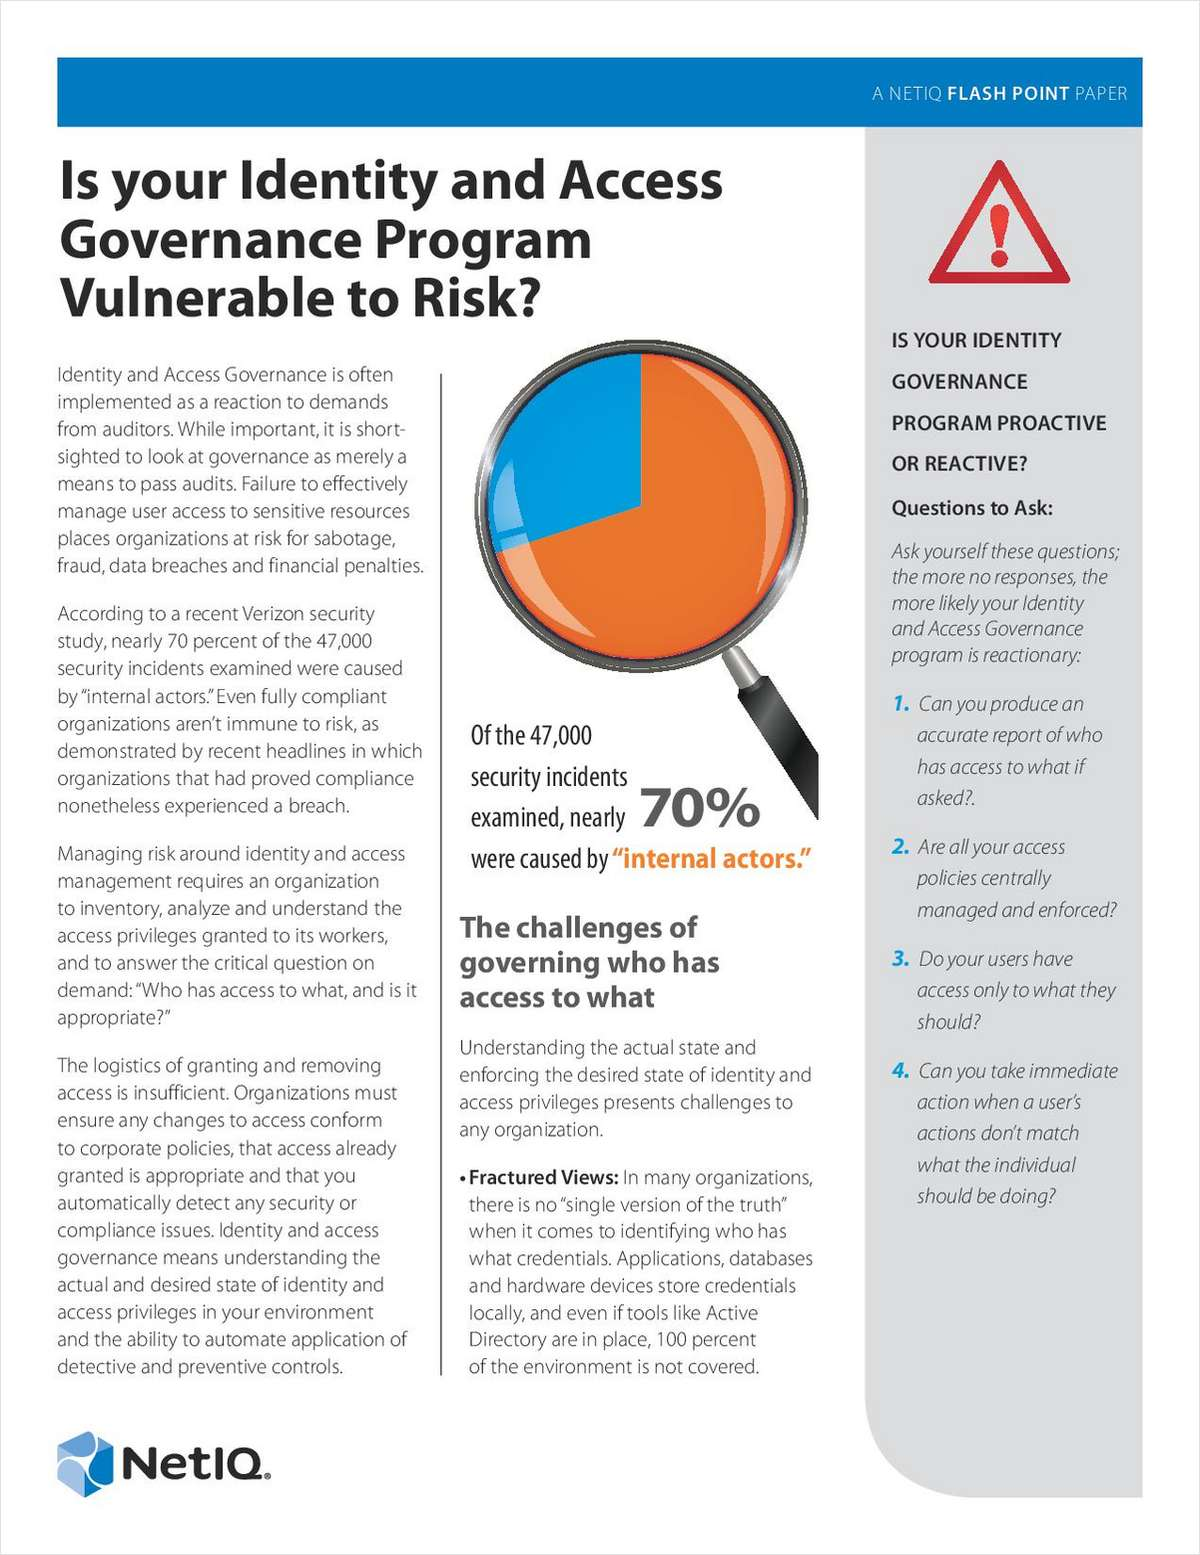 Is Your Identity and Access Governance Program Vulnerable to Risk?